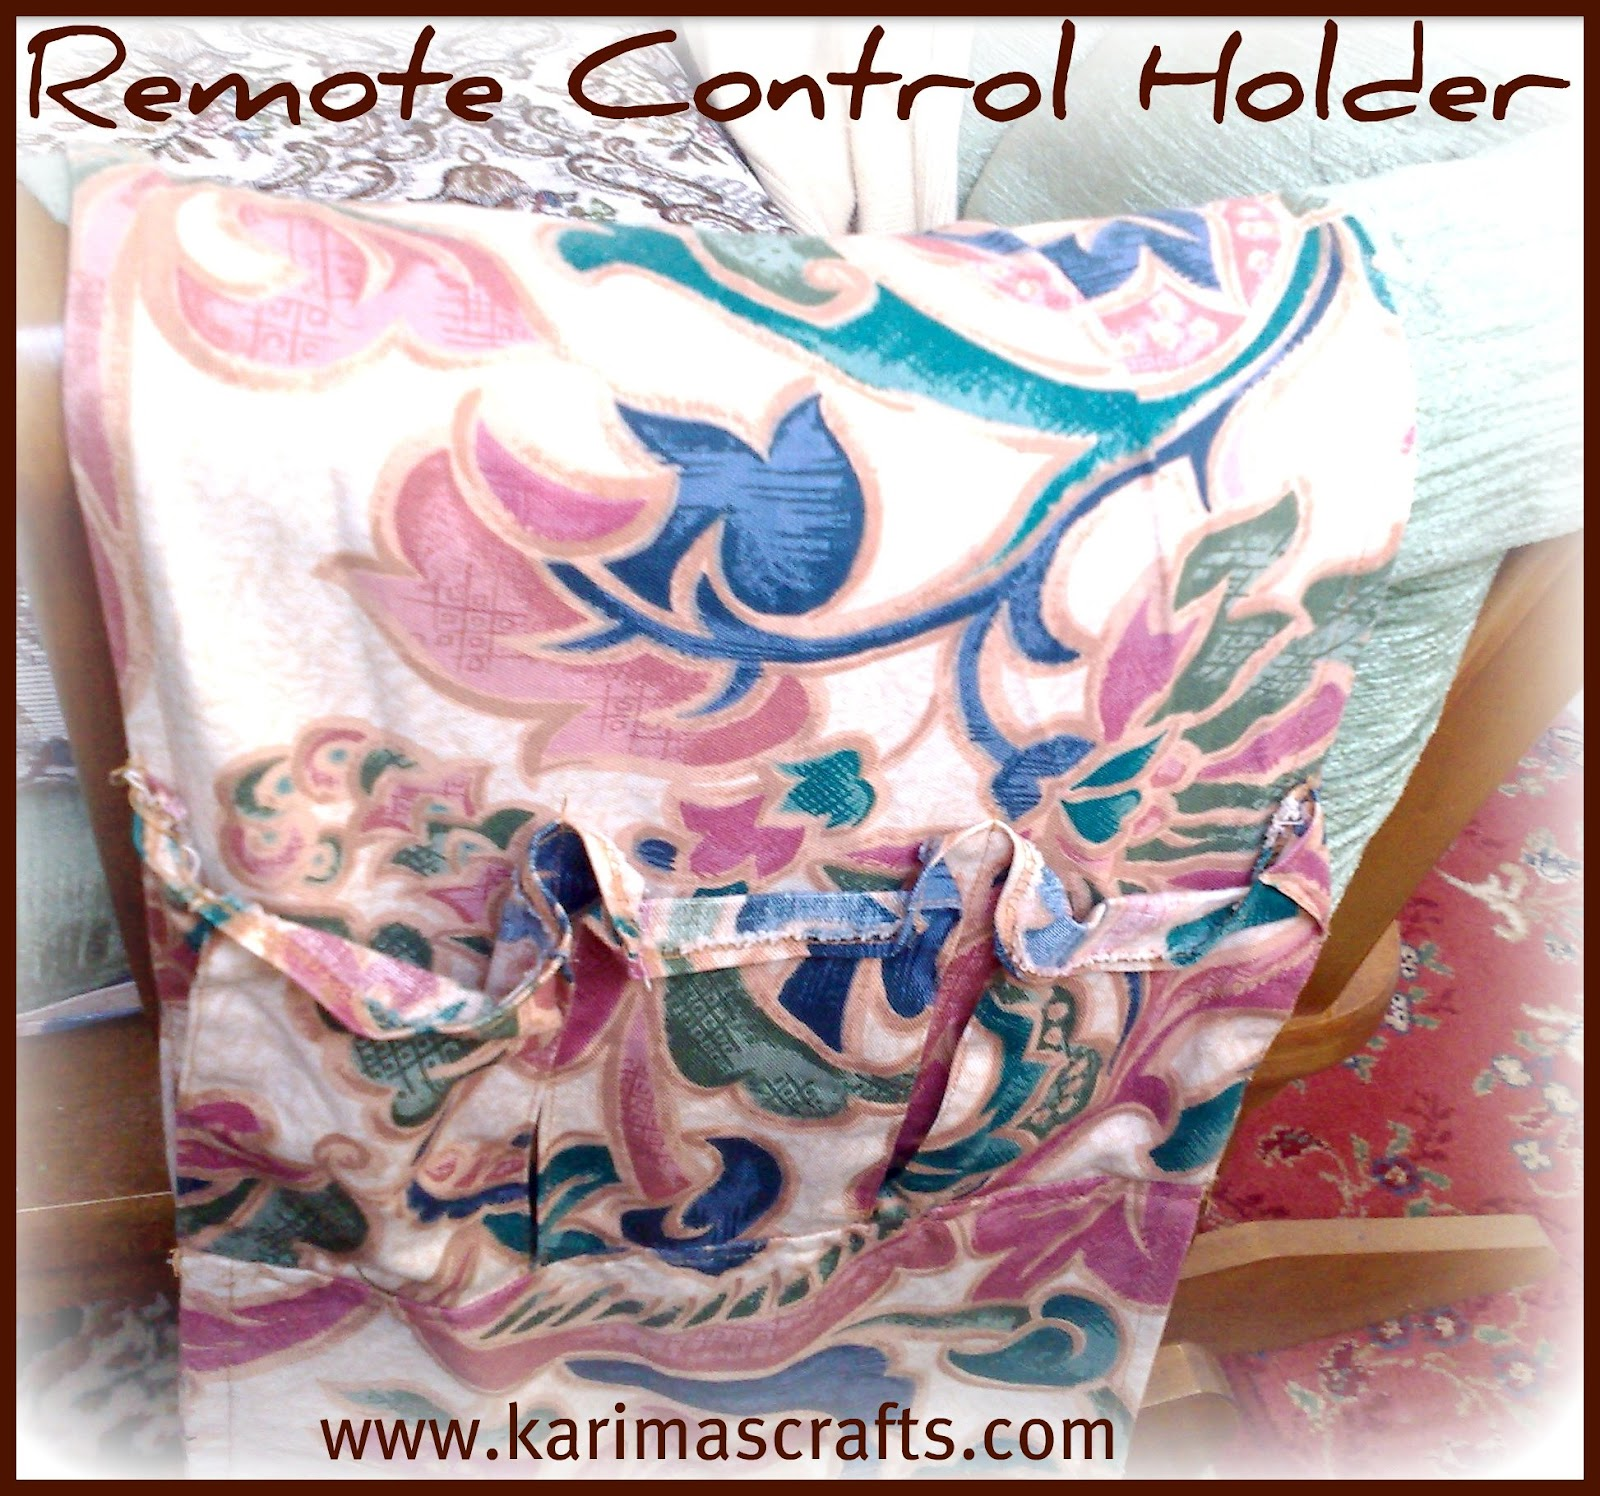 remote control holder for chair pattern honda pilot with captains chairs karima 39s crafts arm covers and